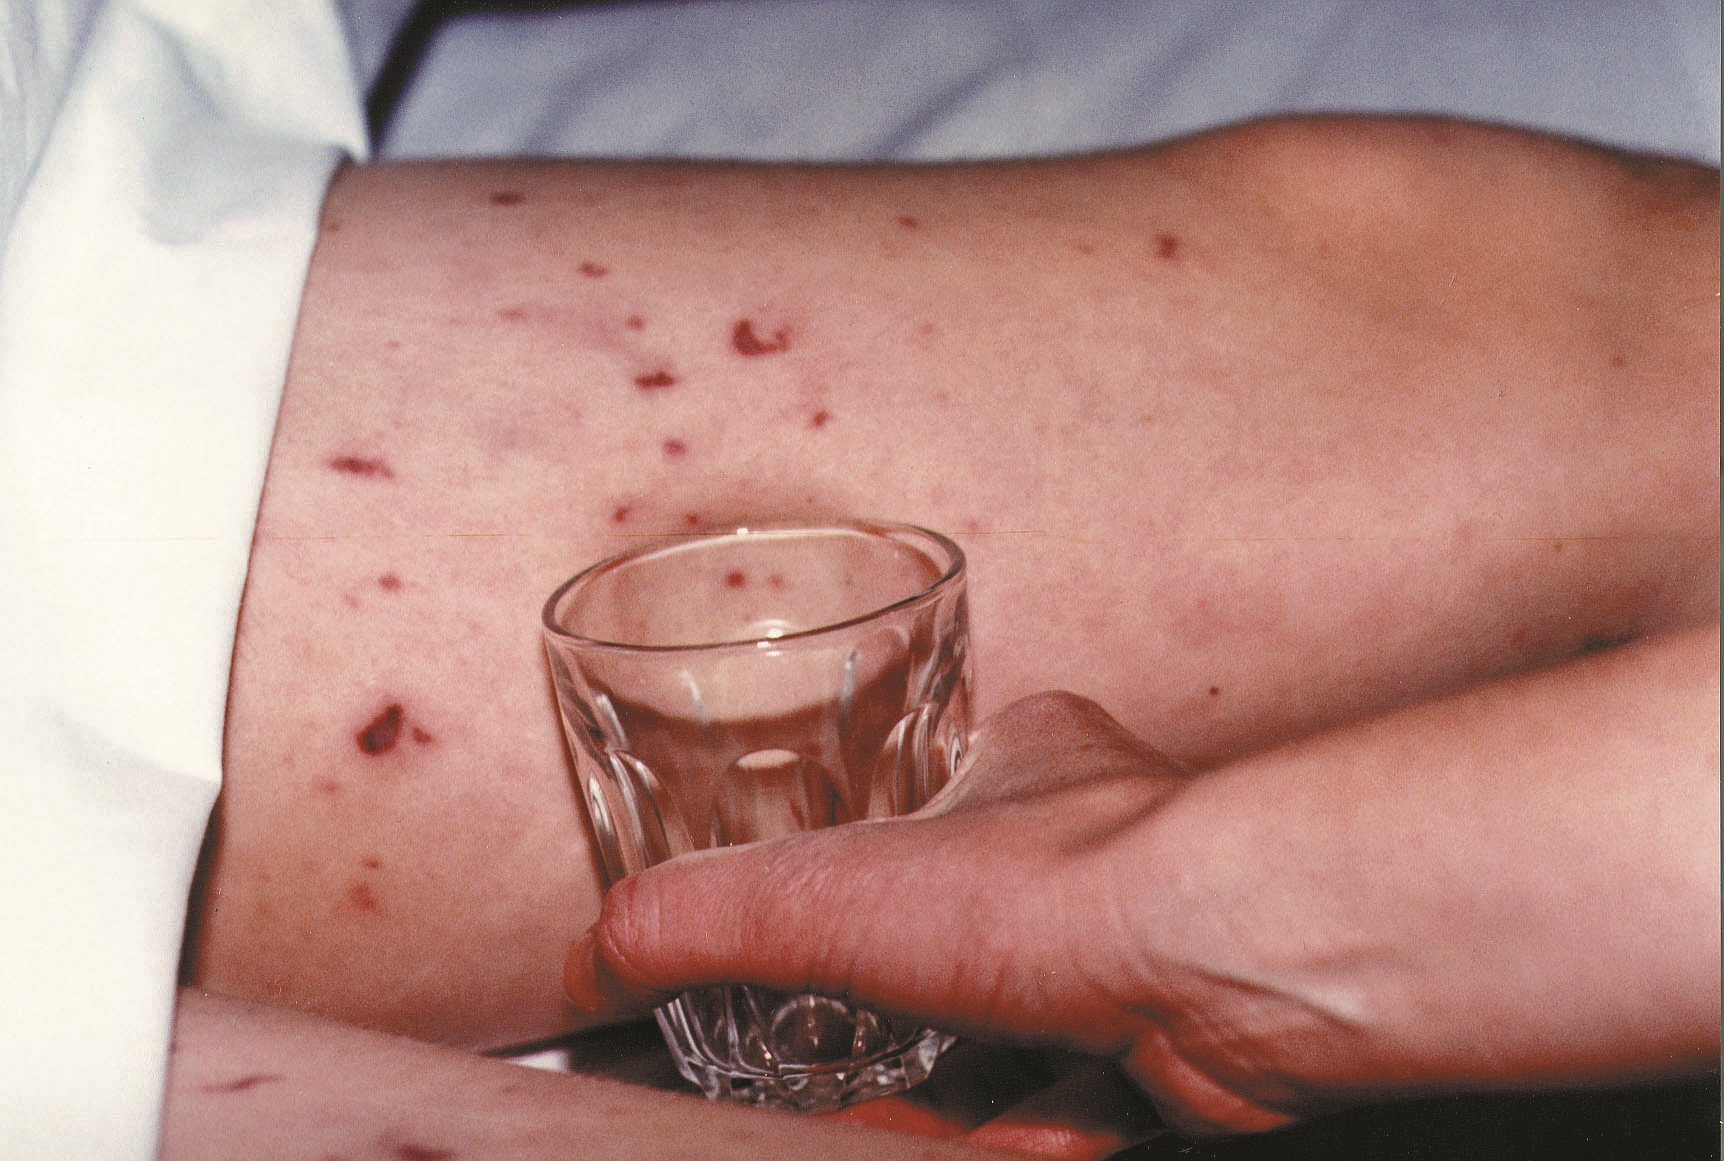 Glass test for meningitis rash